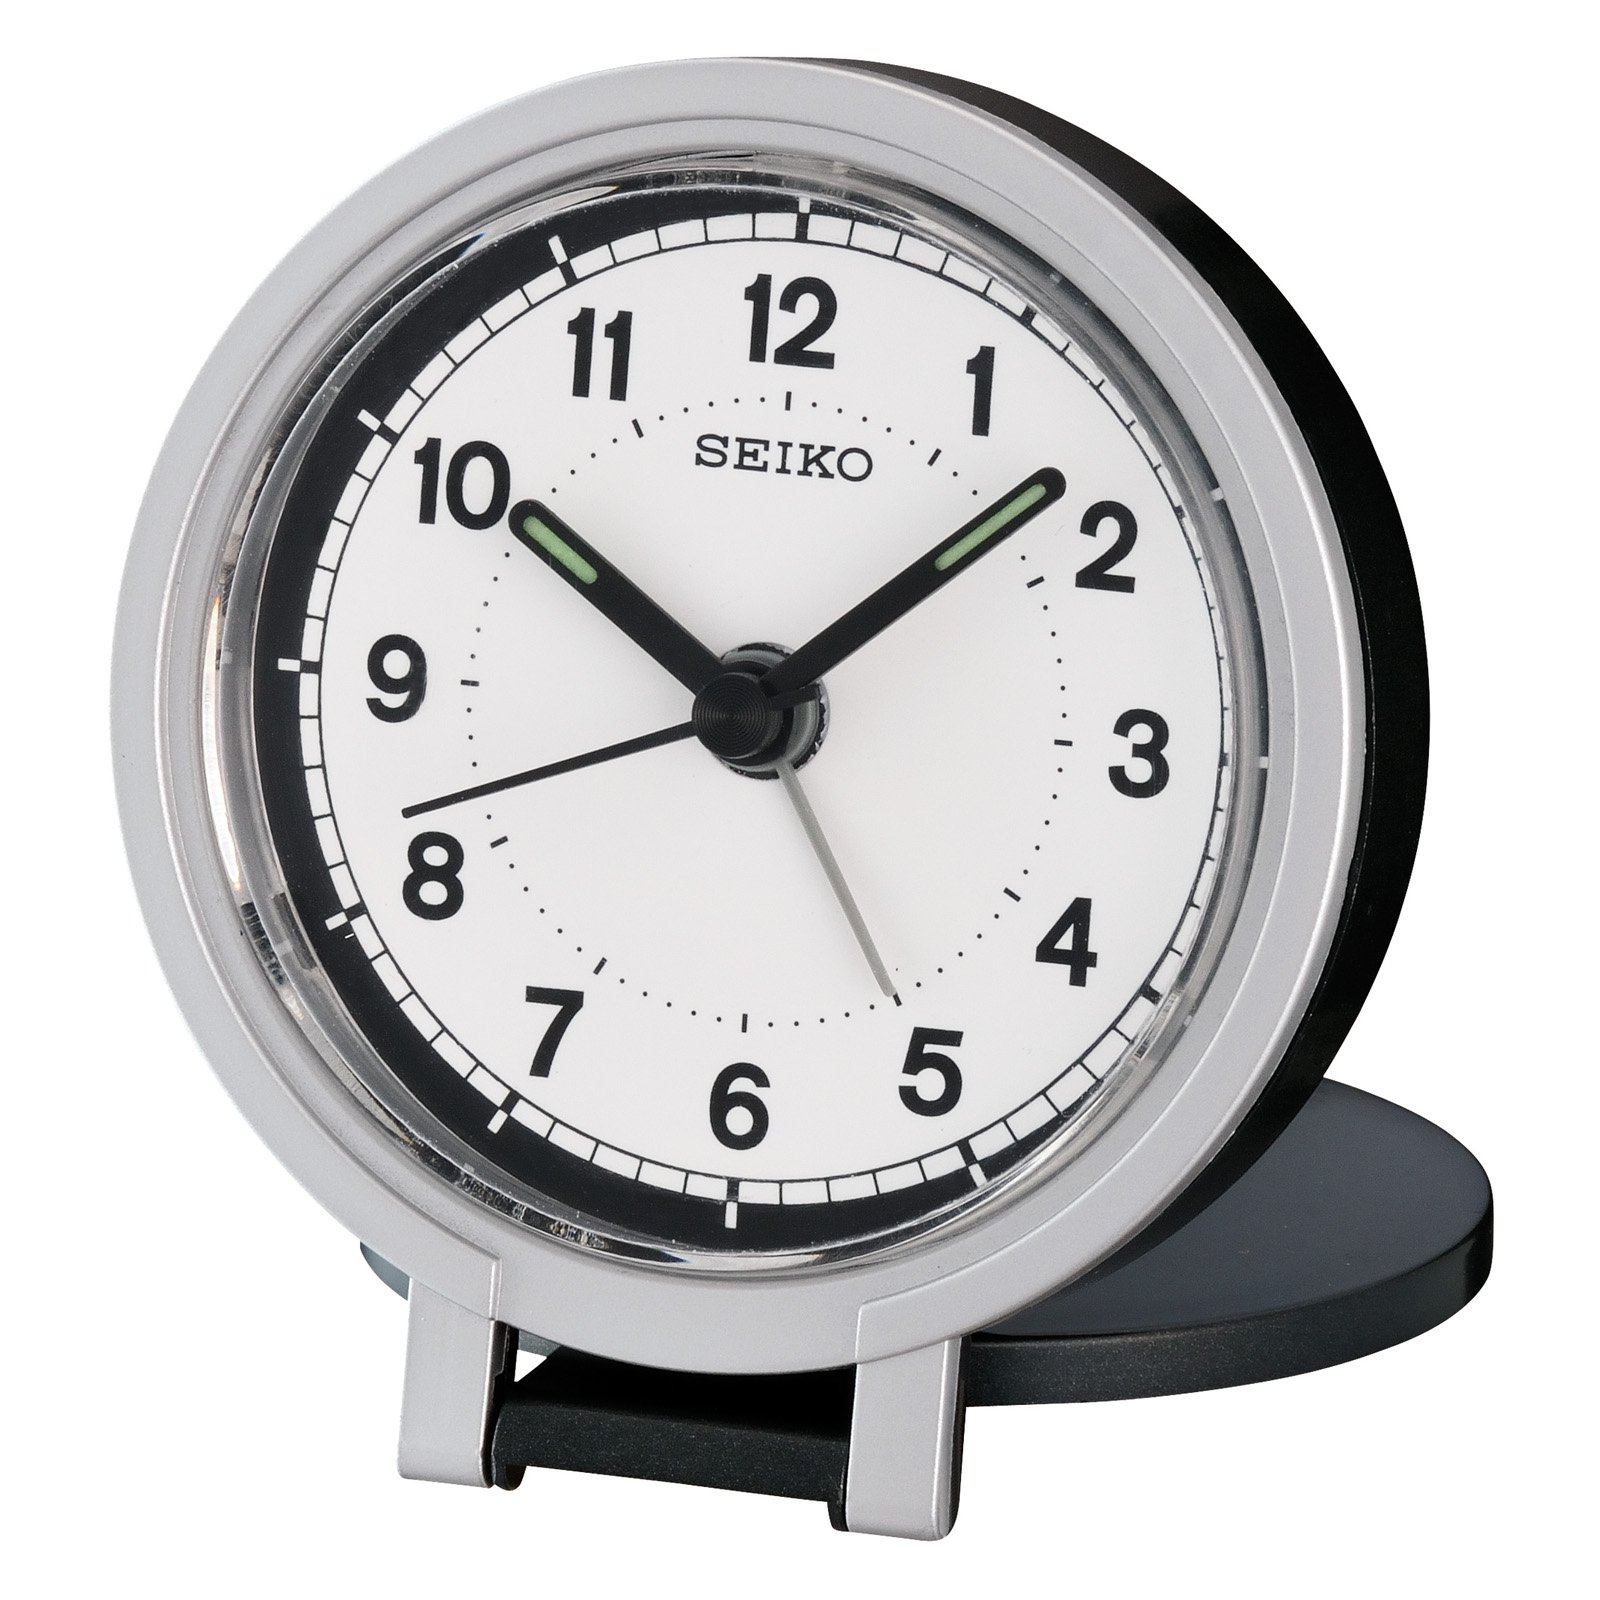 Seiko QHT011 Wall Clock - 2.75 in. Wide